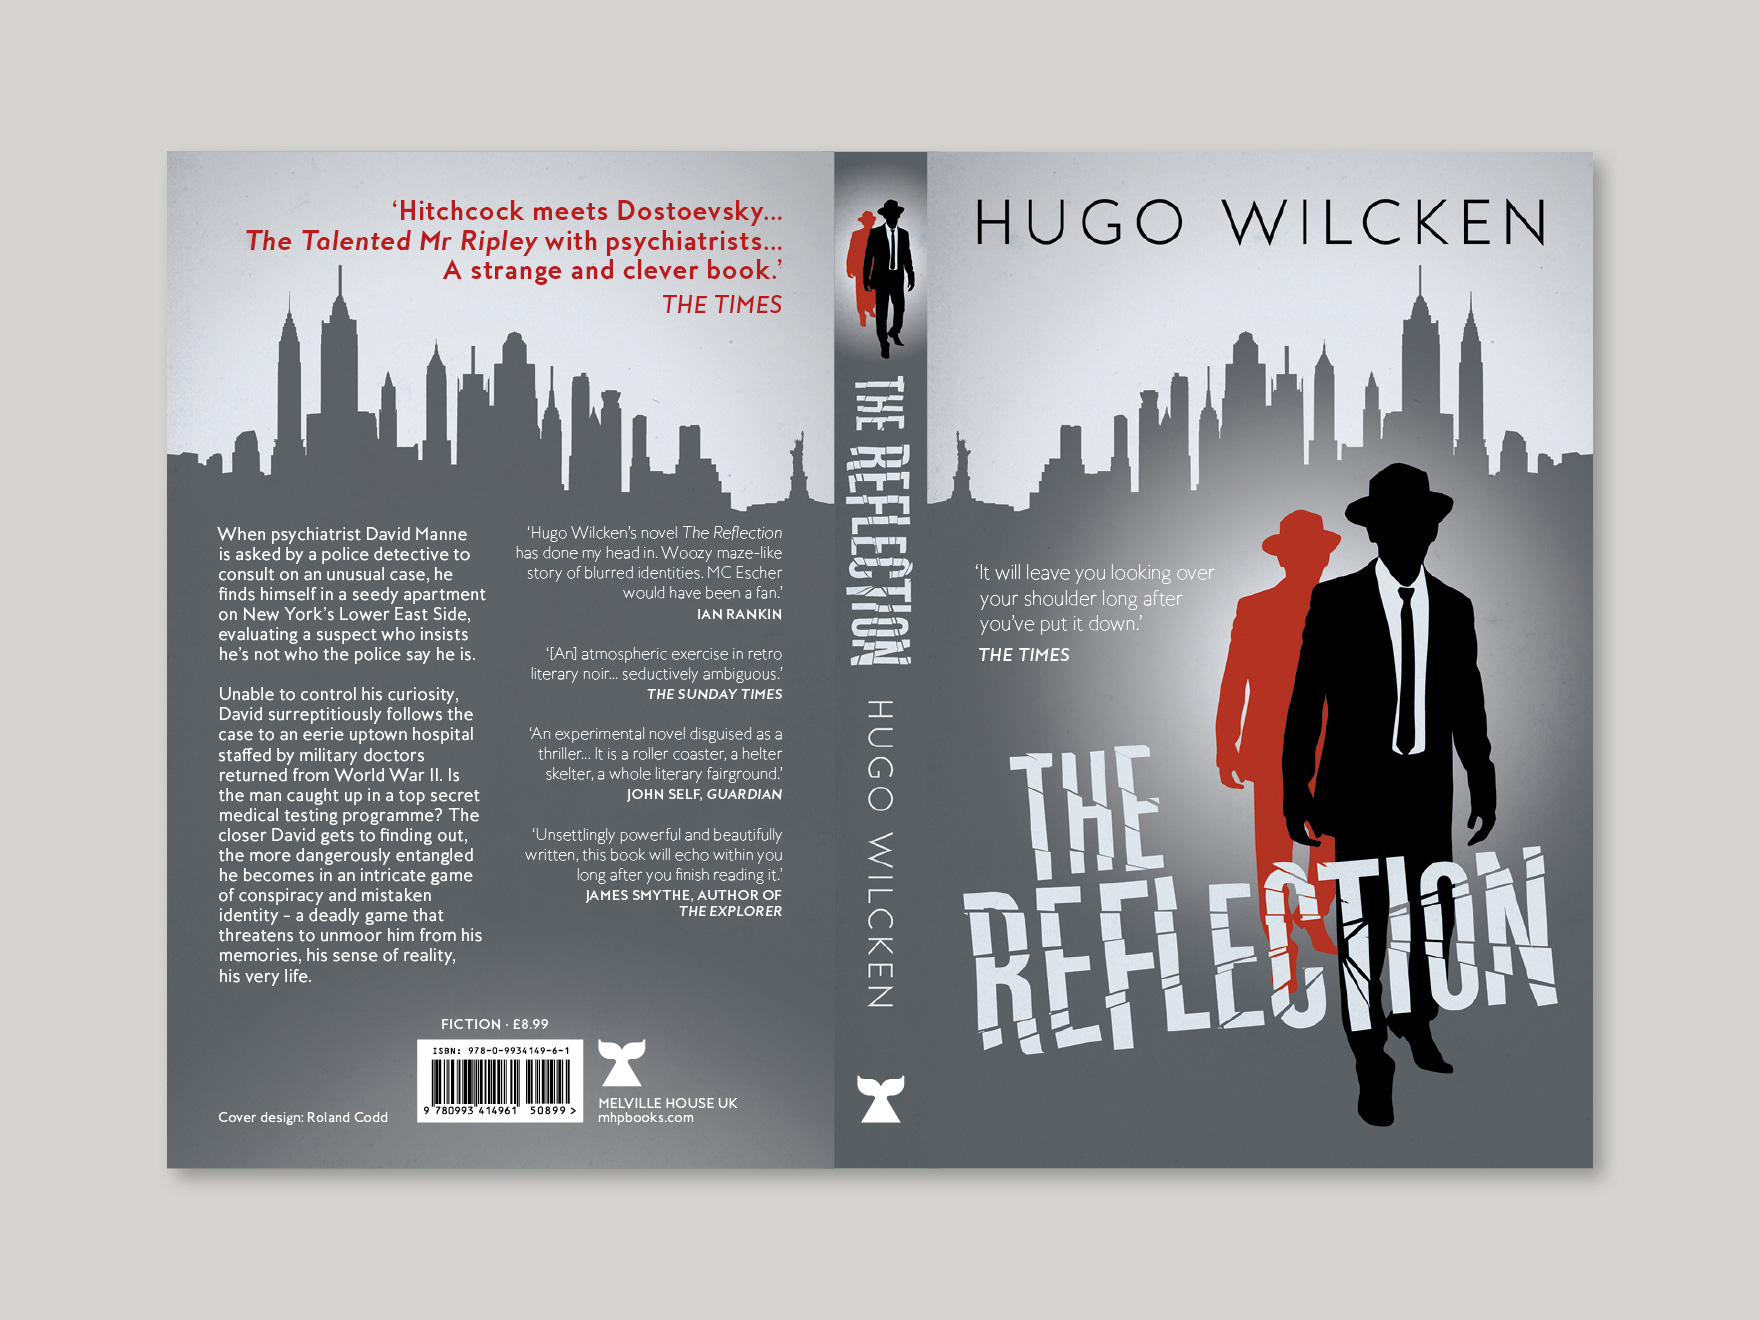 The full book cover, showing the front, spine and back, of The Reflection